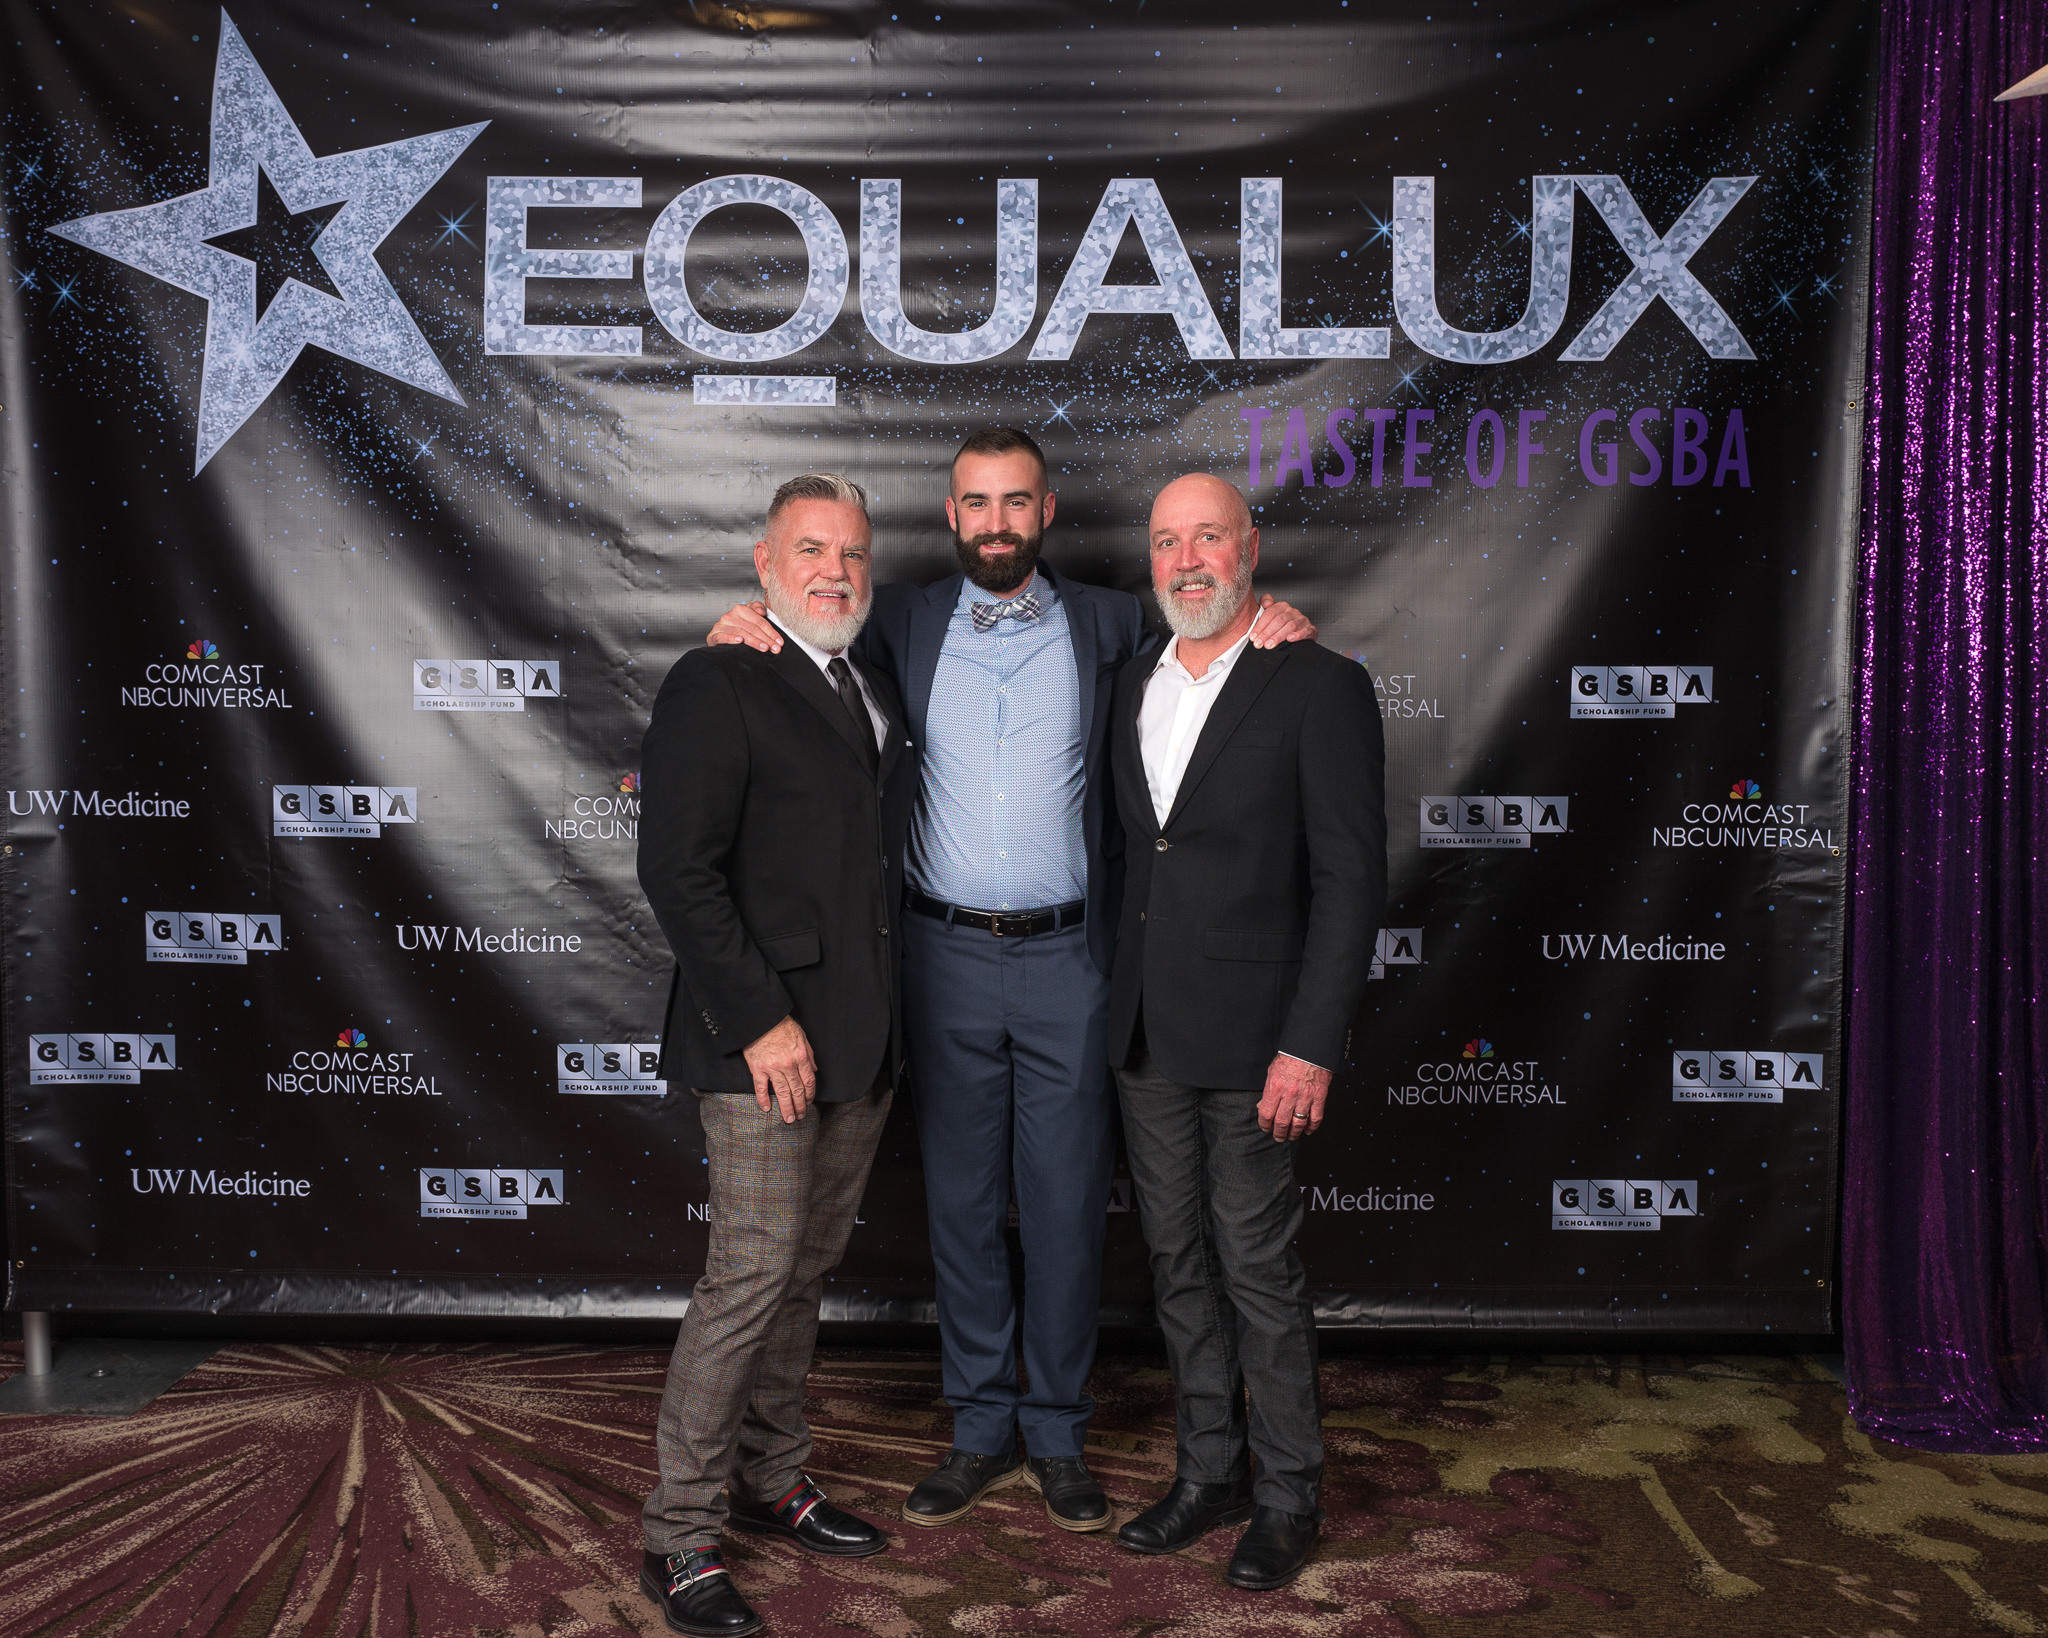 111718_GSBA EQUALUX at The Westin Seattle (Credit- Nate Gowdy)-143.jpg